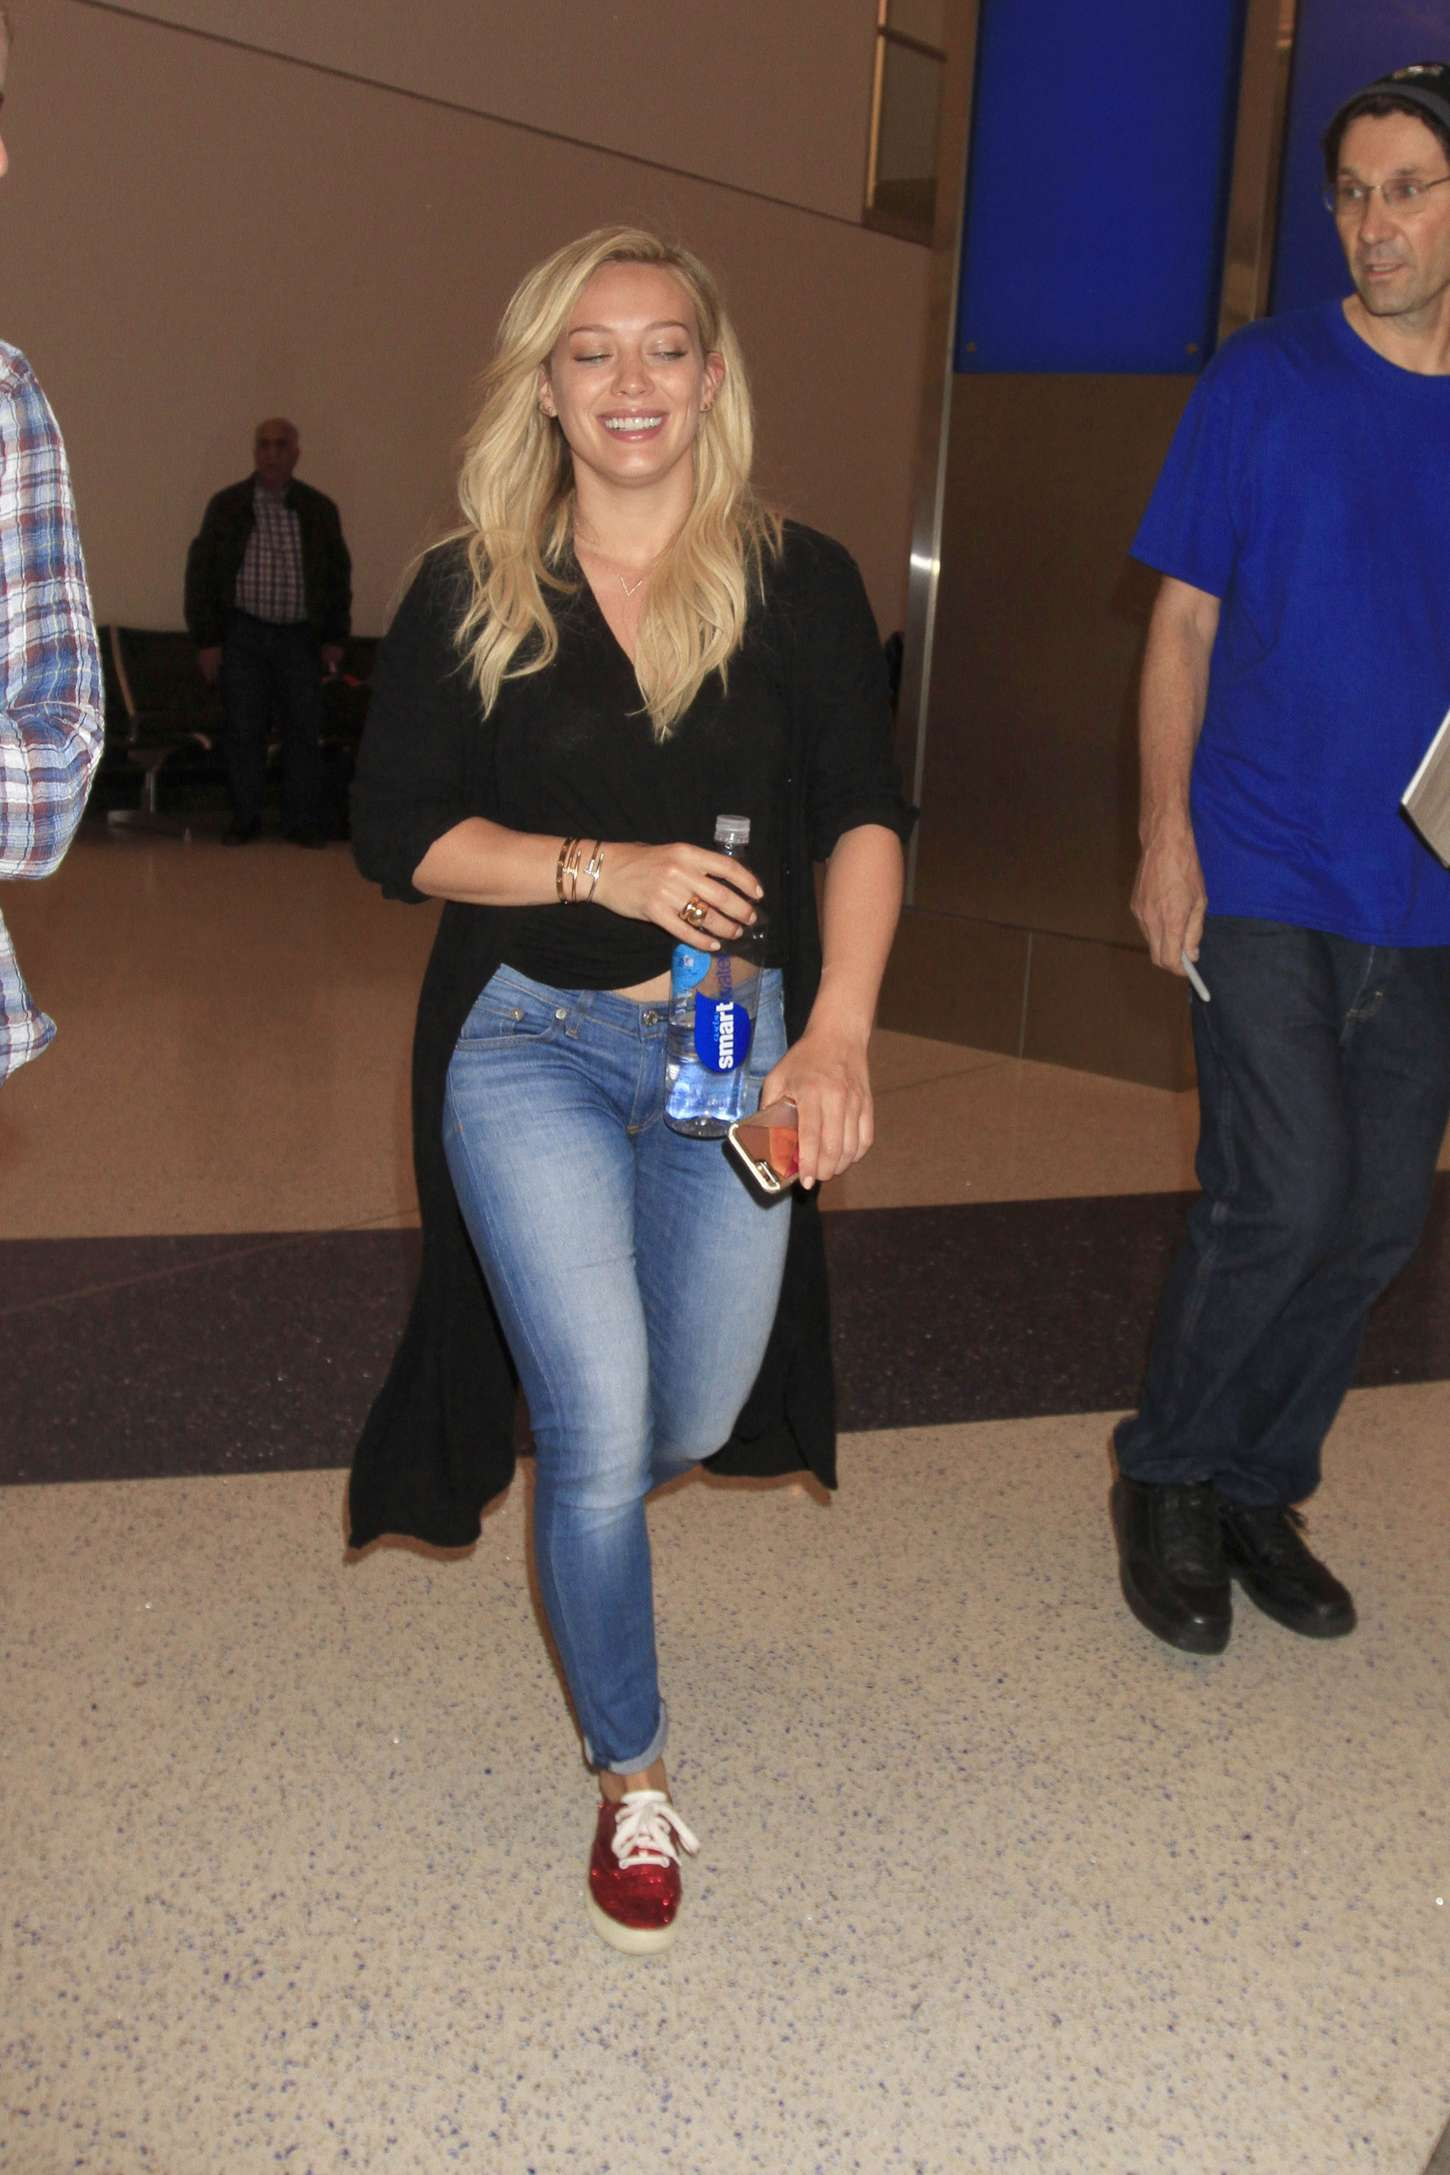 Hilary Duff in Tight Jeans at LAX in LA